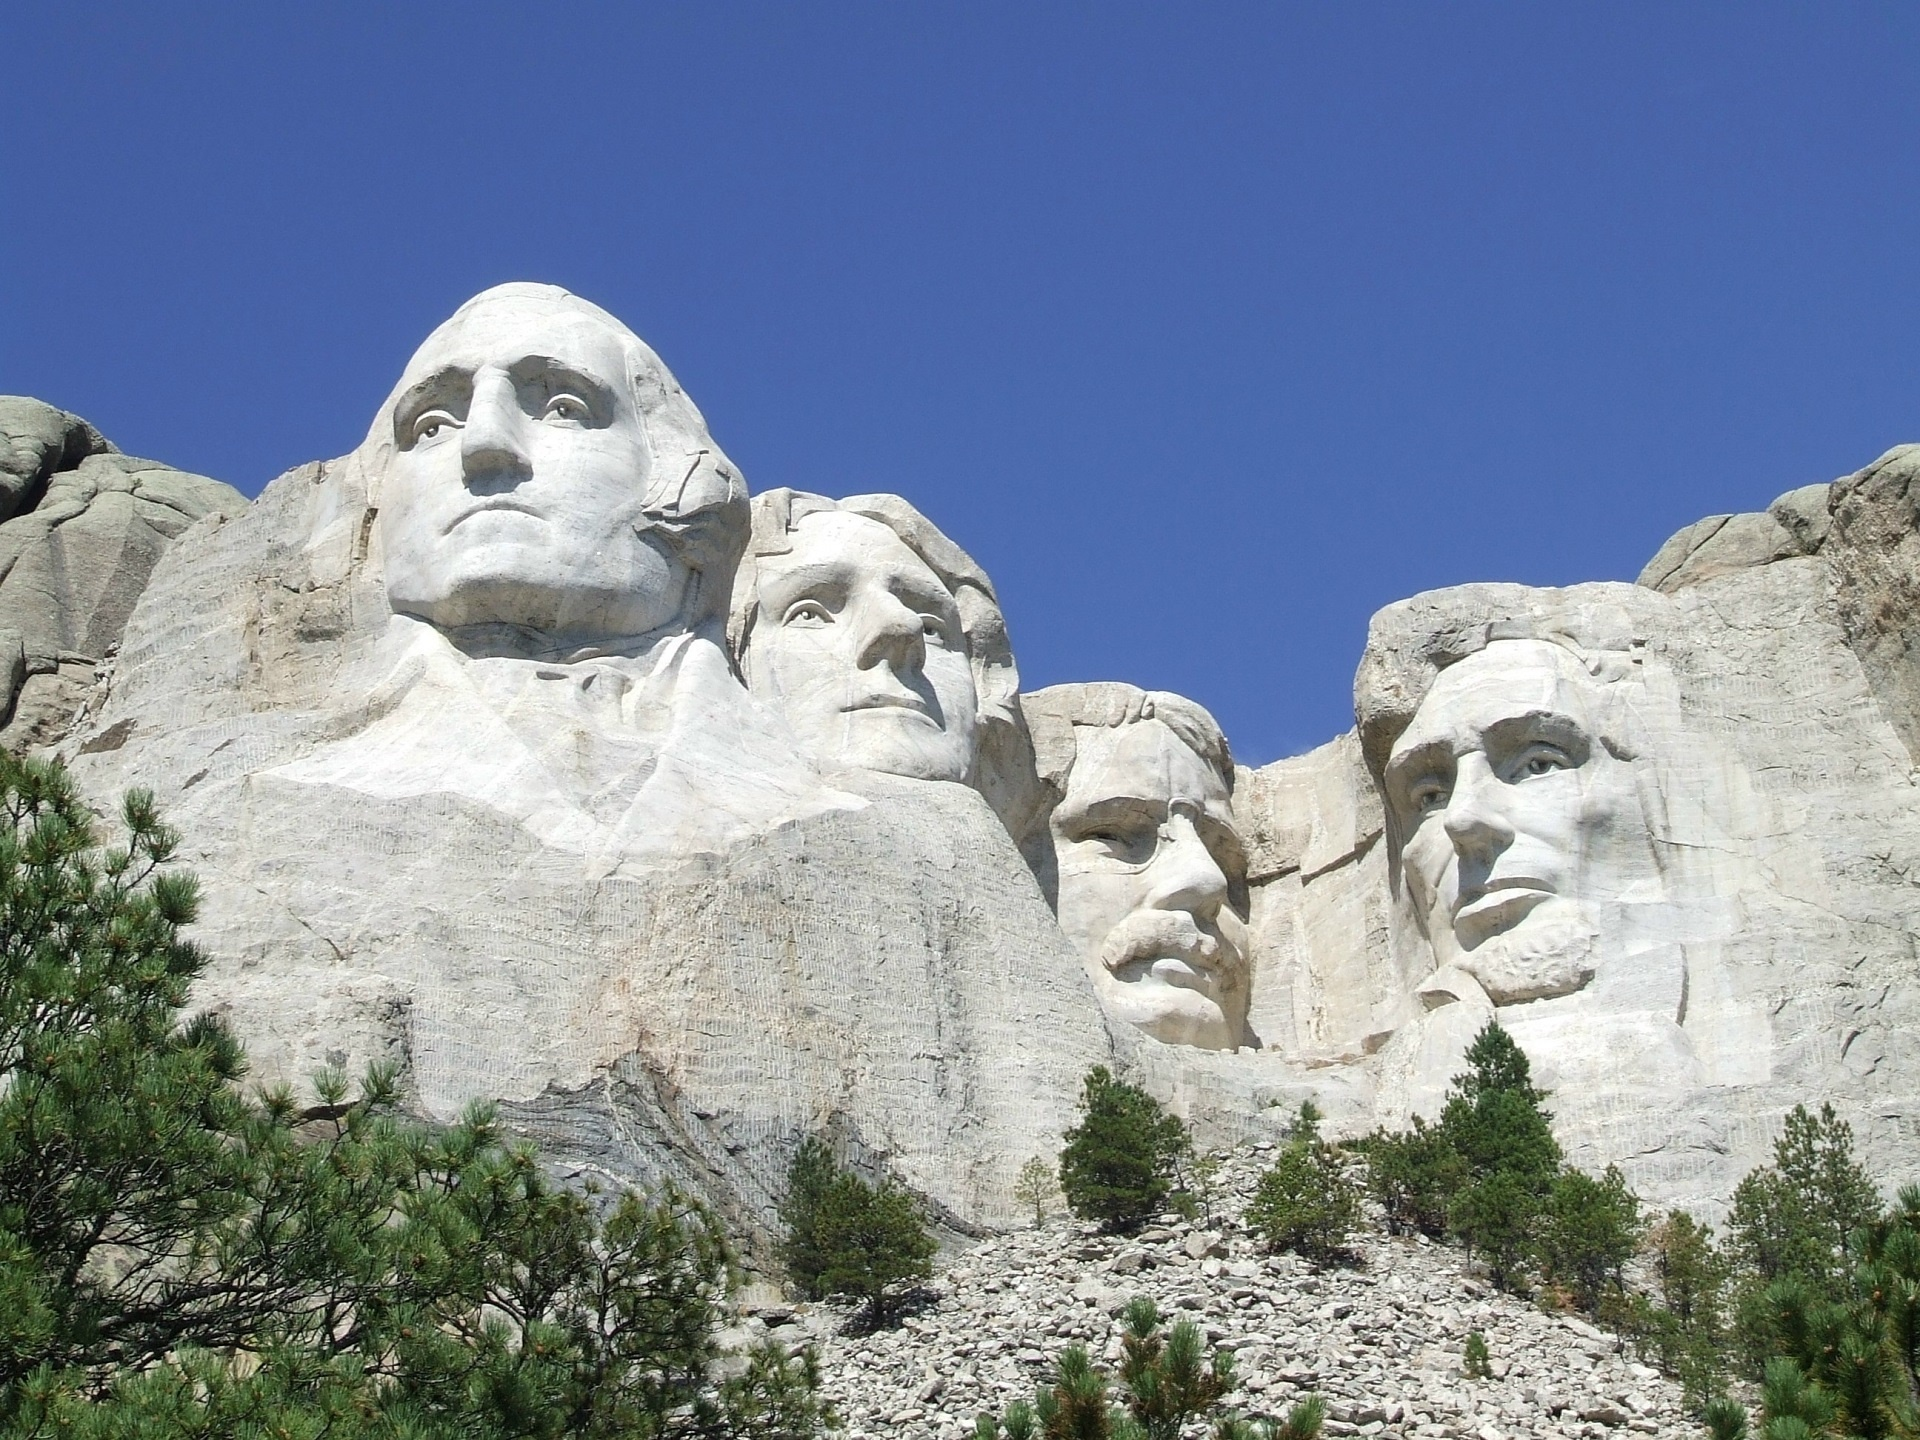 Mt. Rushmore, Parks and Recreation Month